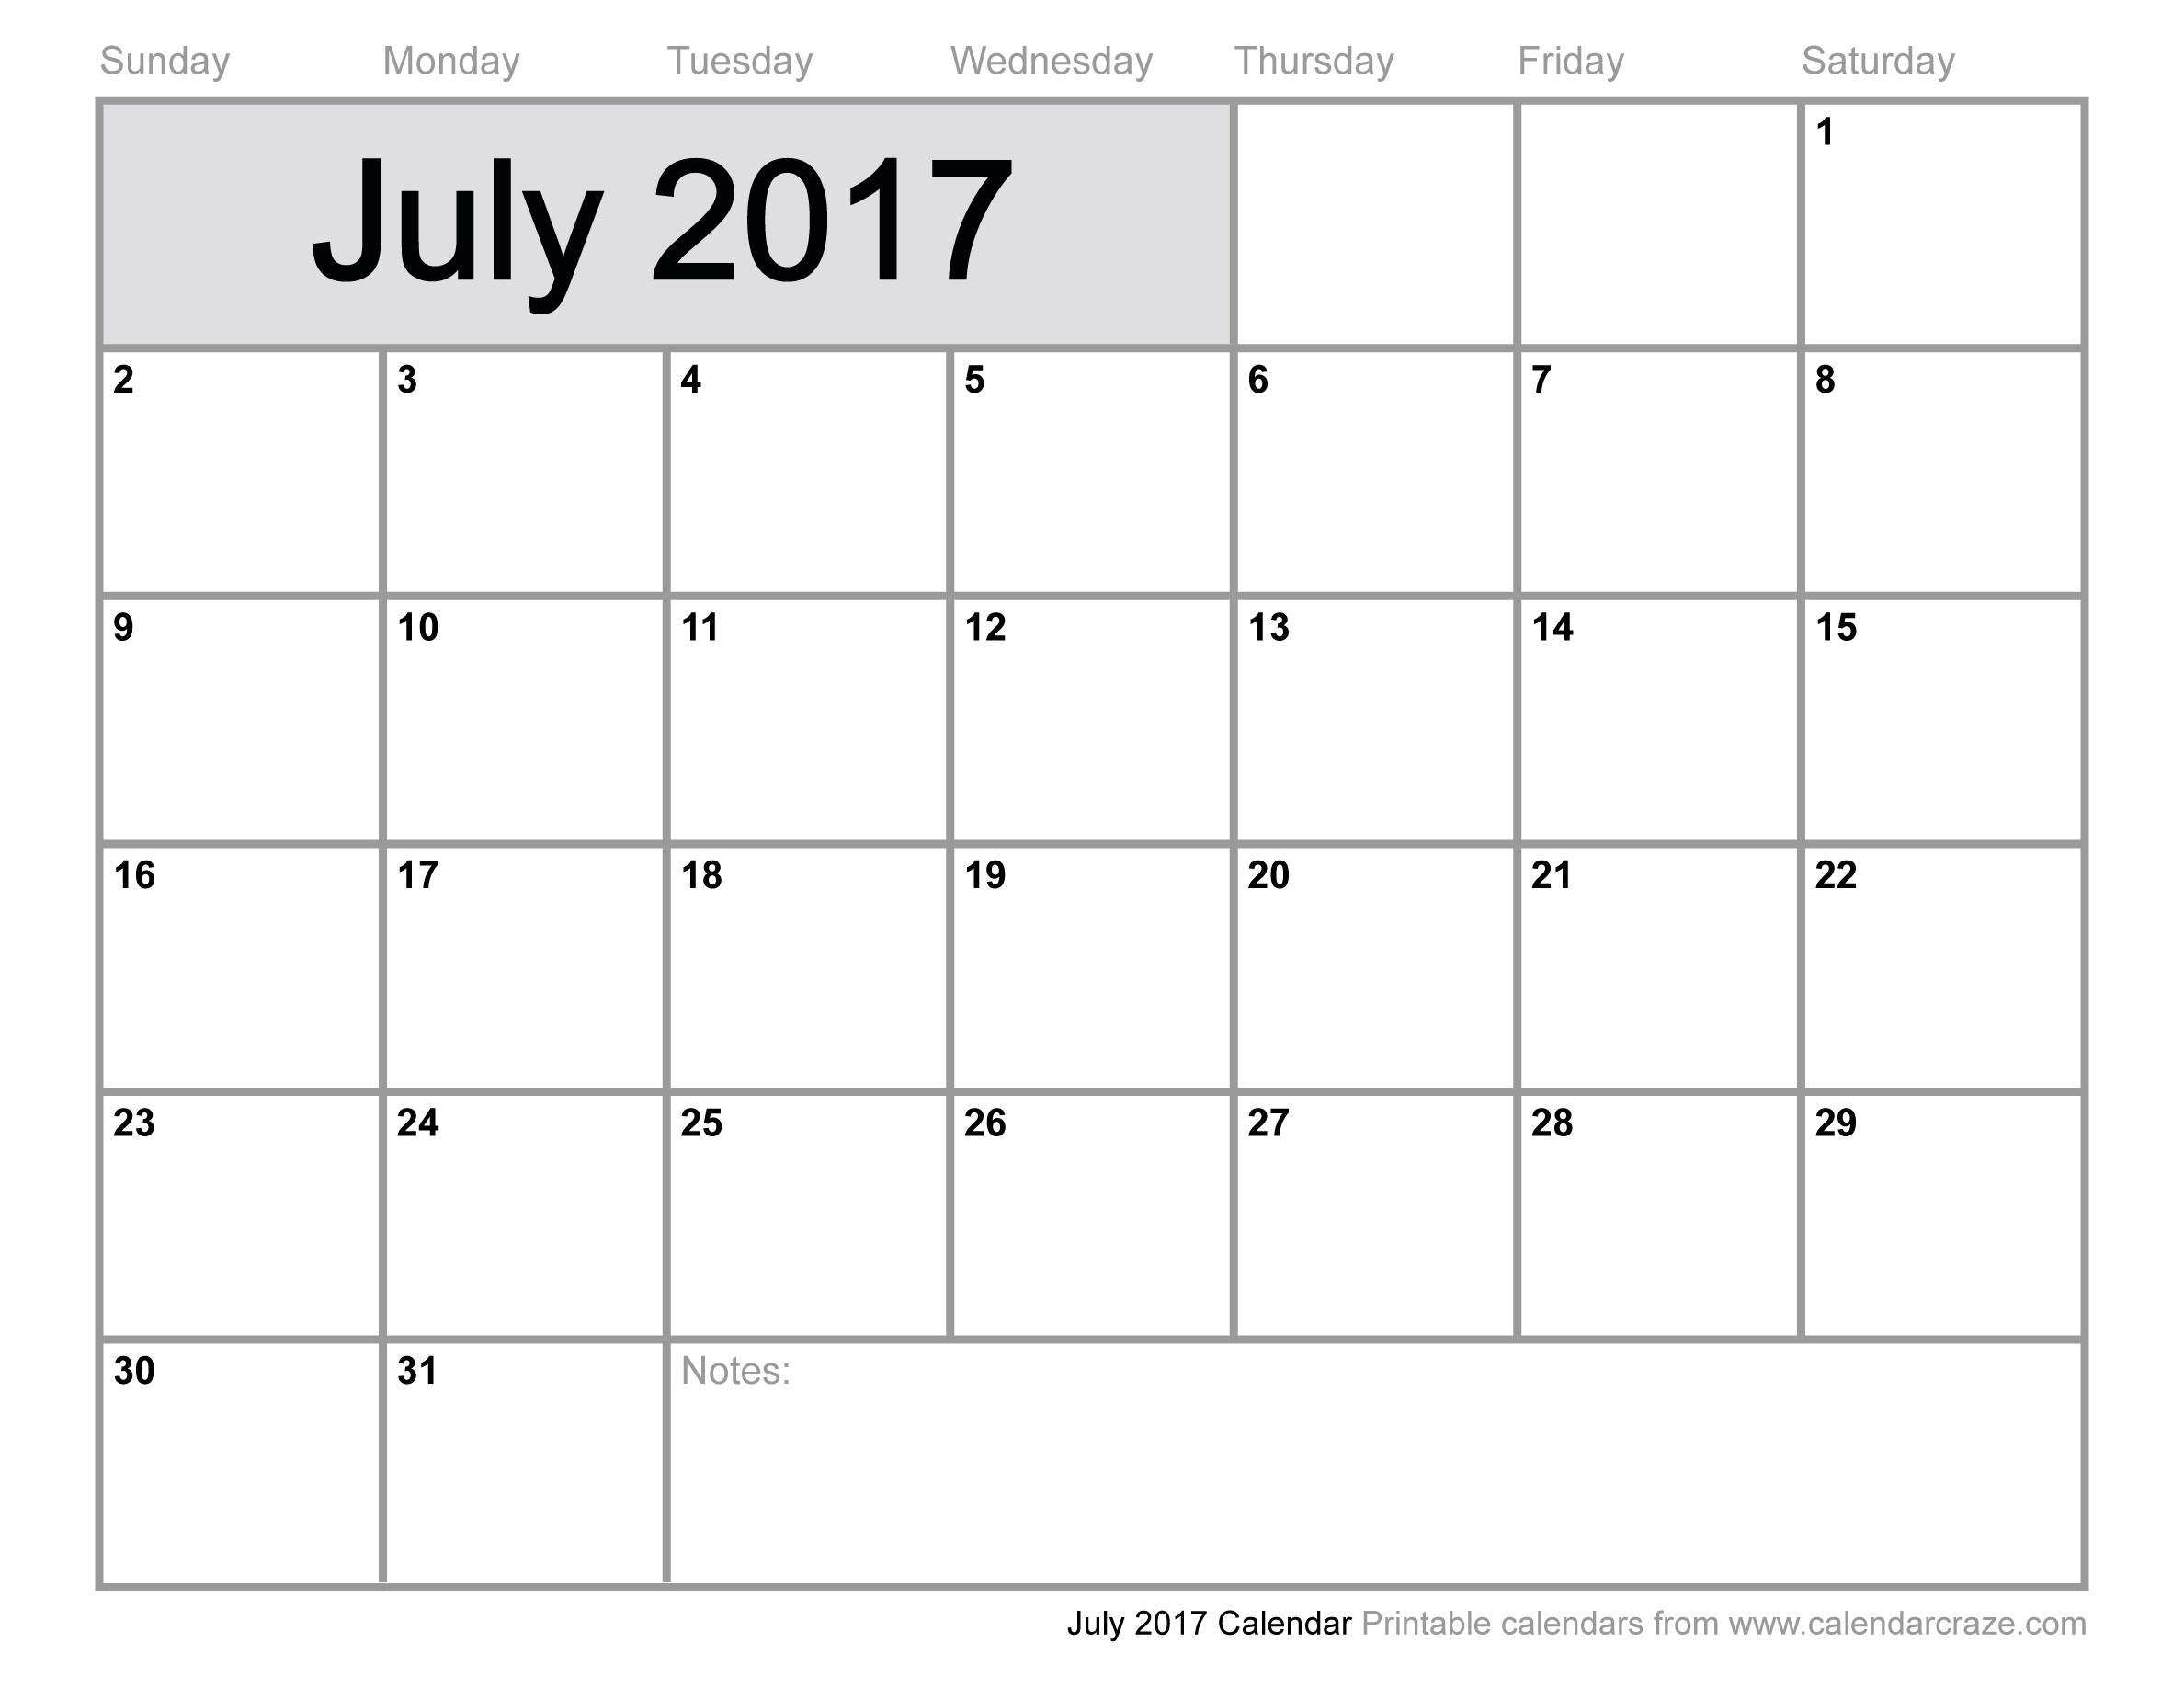 July Calendar Printable 2017 | Hauck Mansion